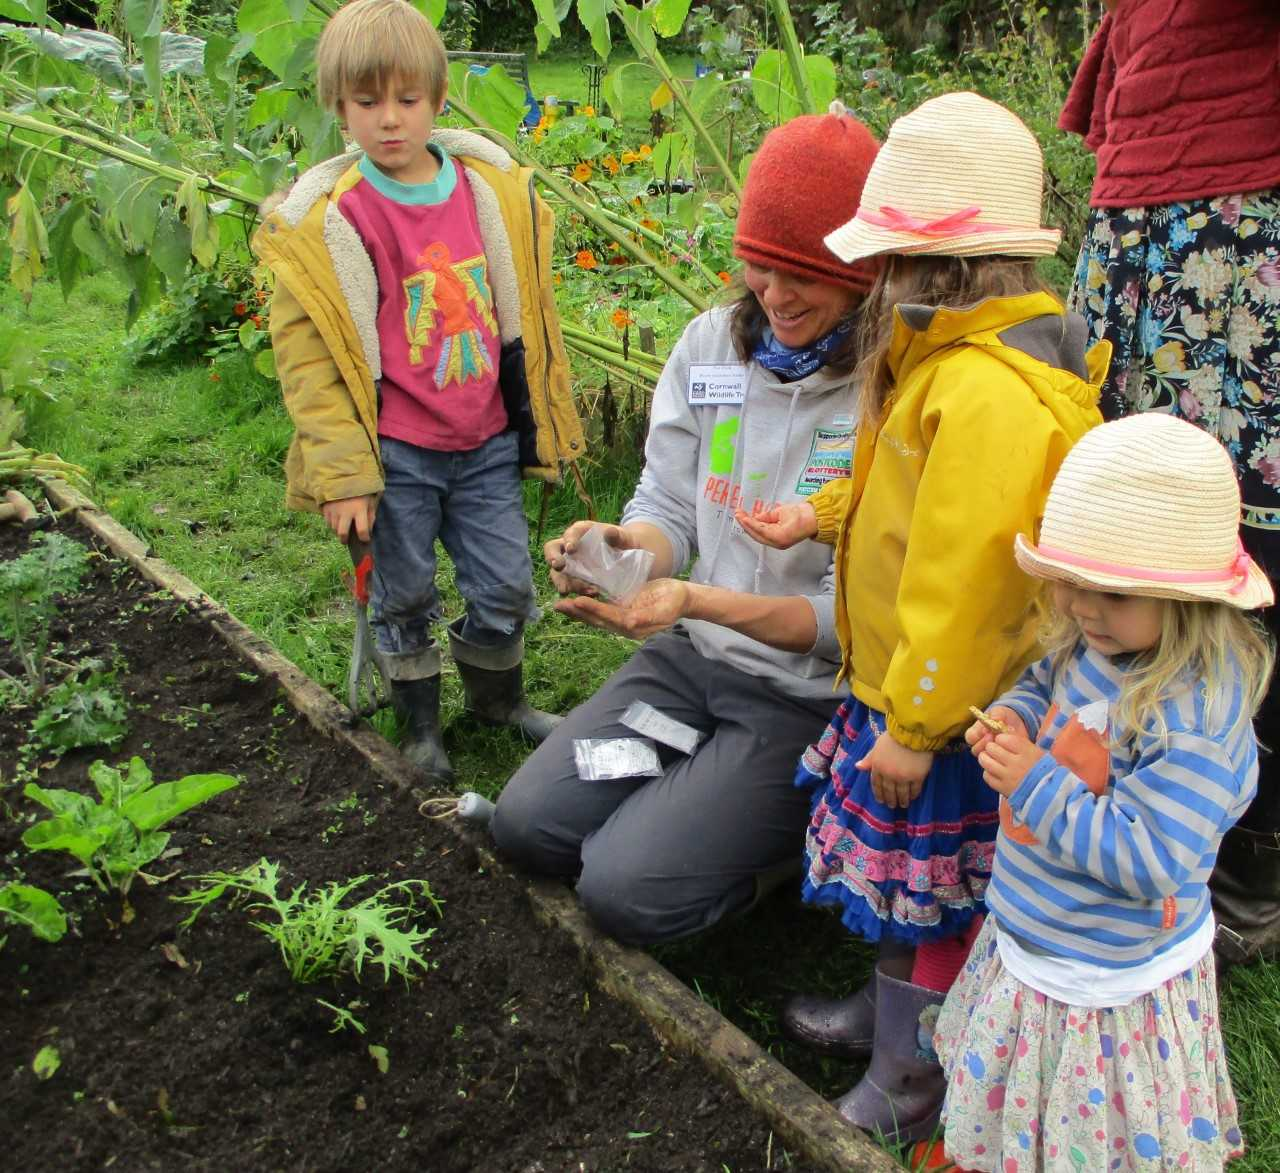 Budding young gardeners invited to compete in spring flower show